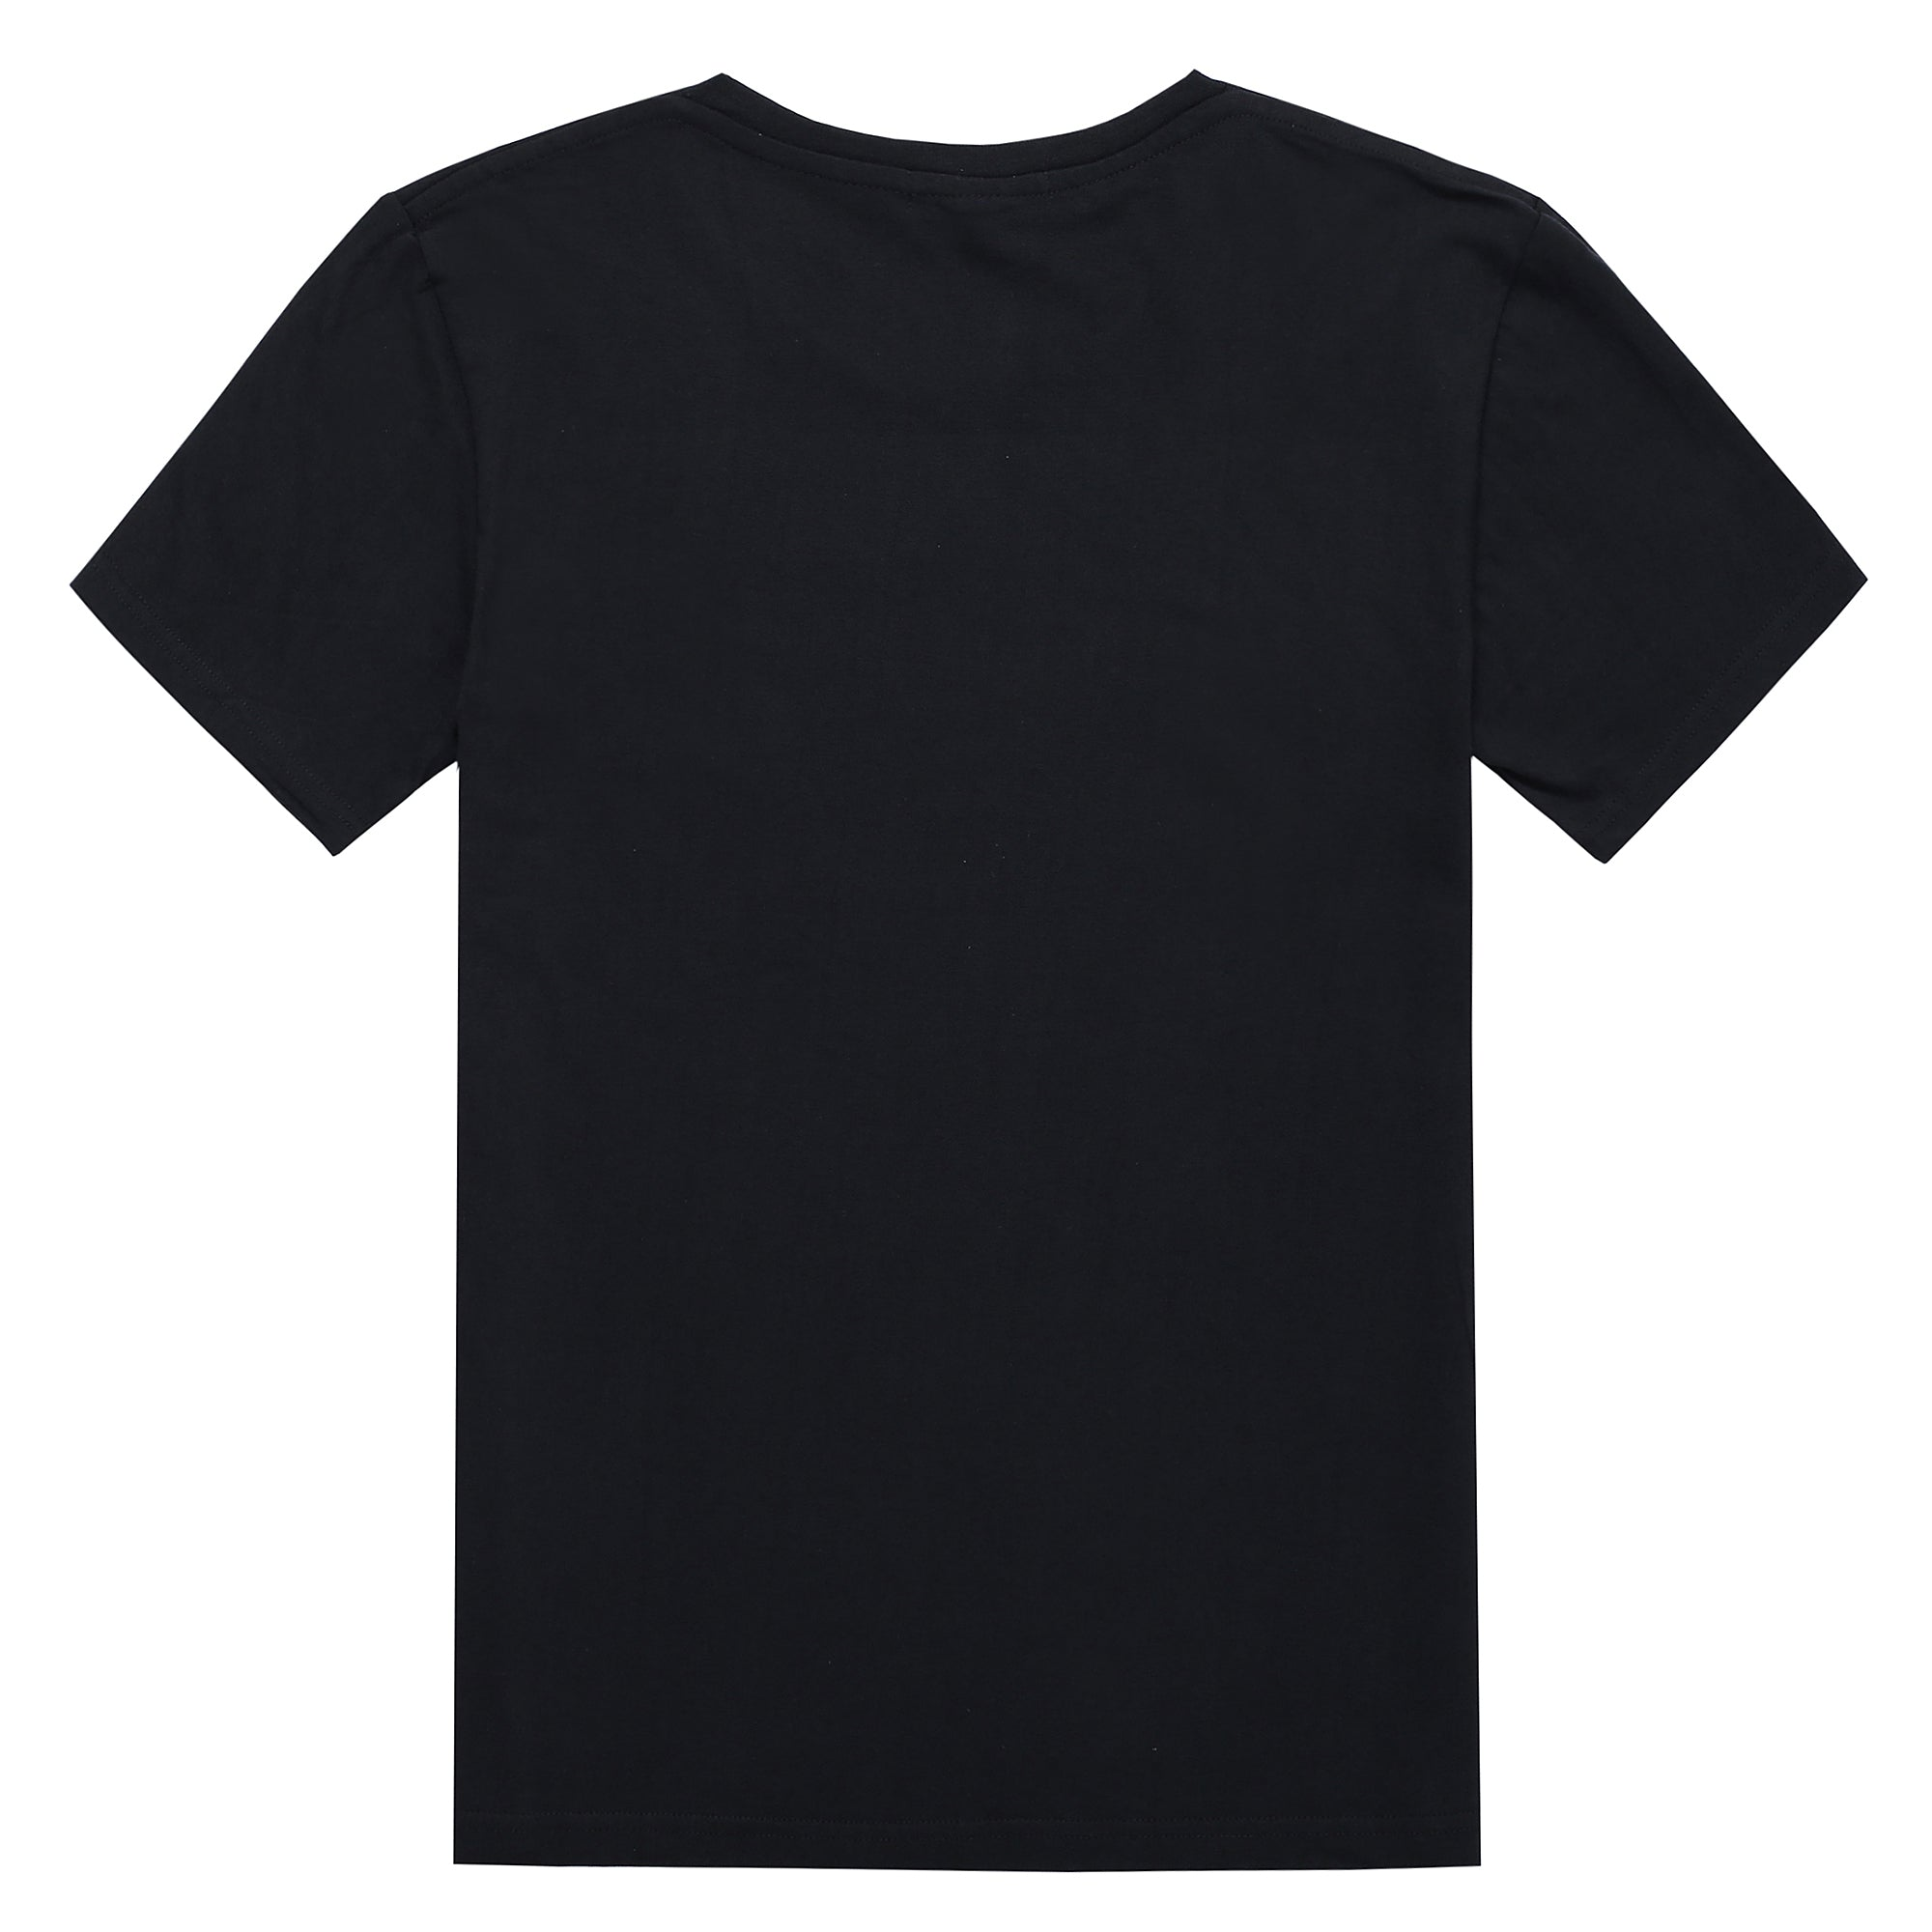 Original Do The Talking T-shirt In Black